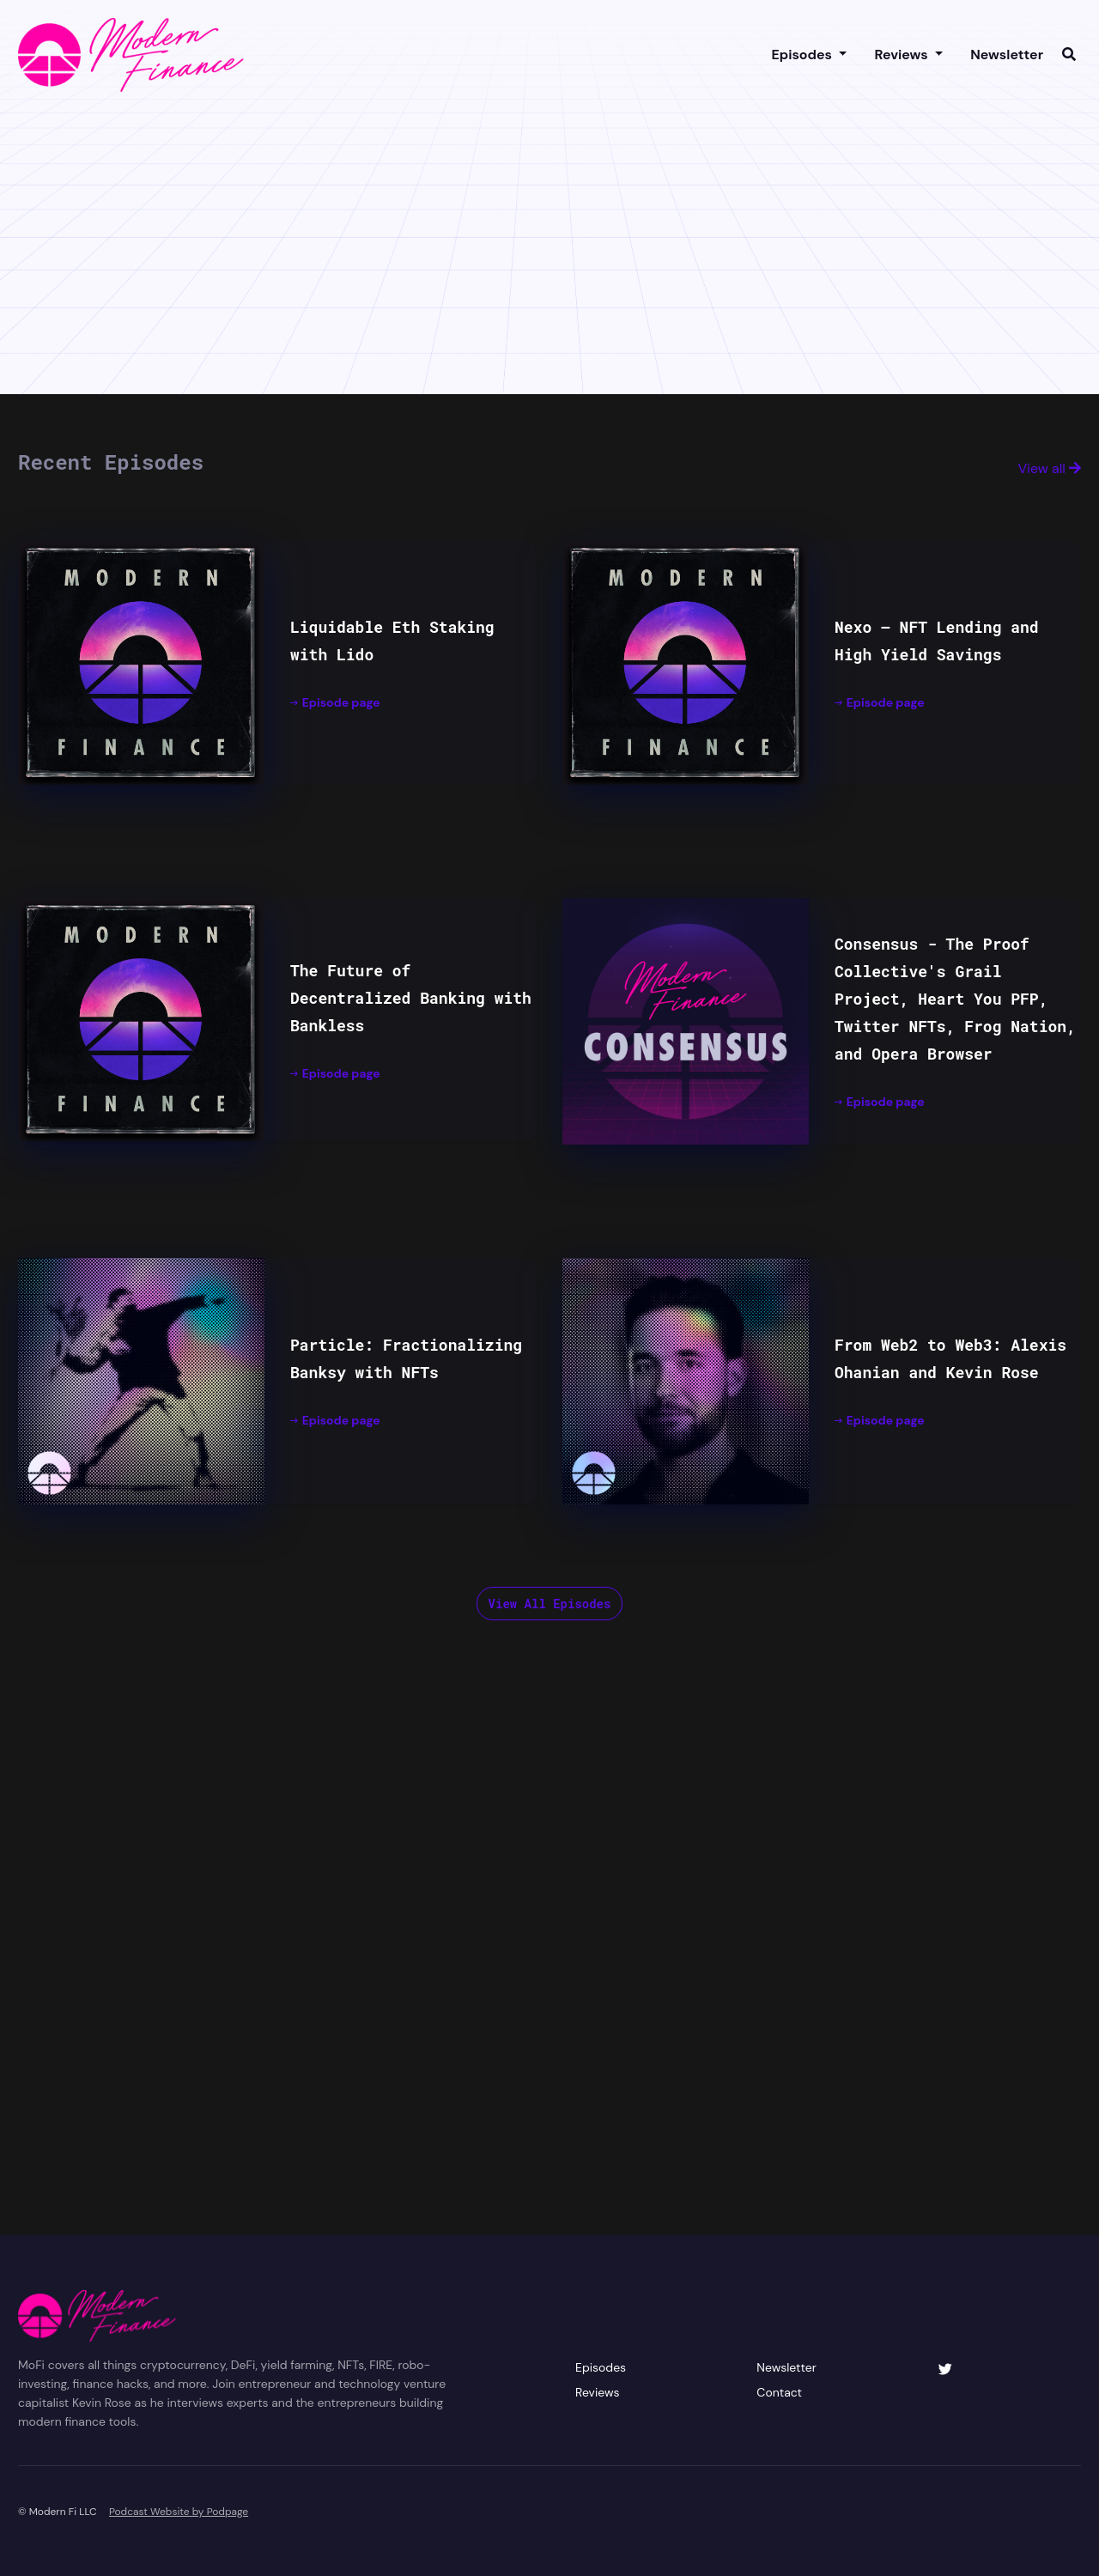 The Carbon podcast website template